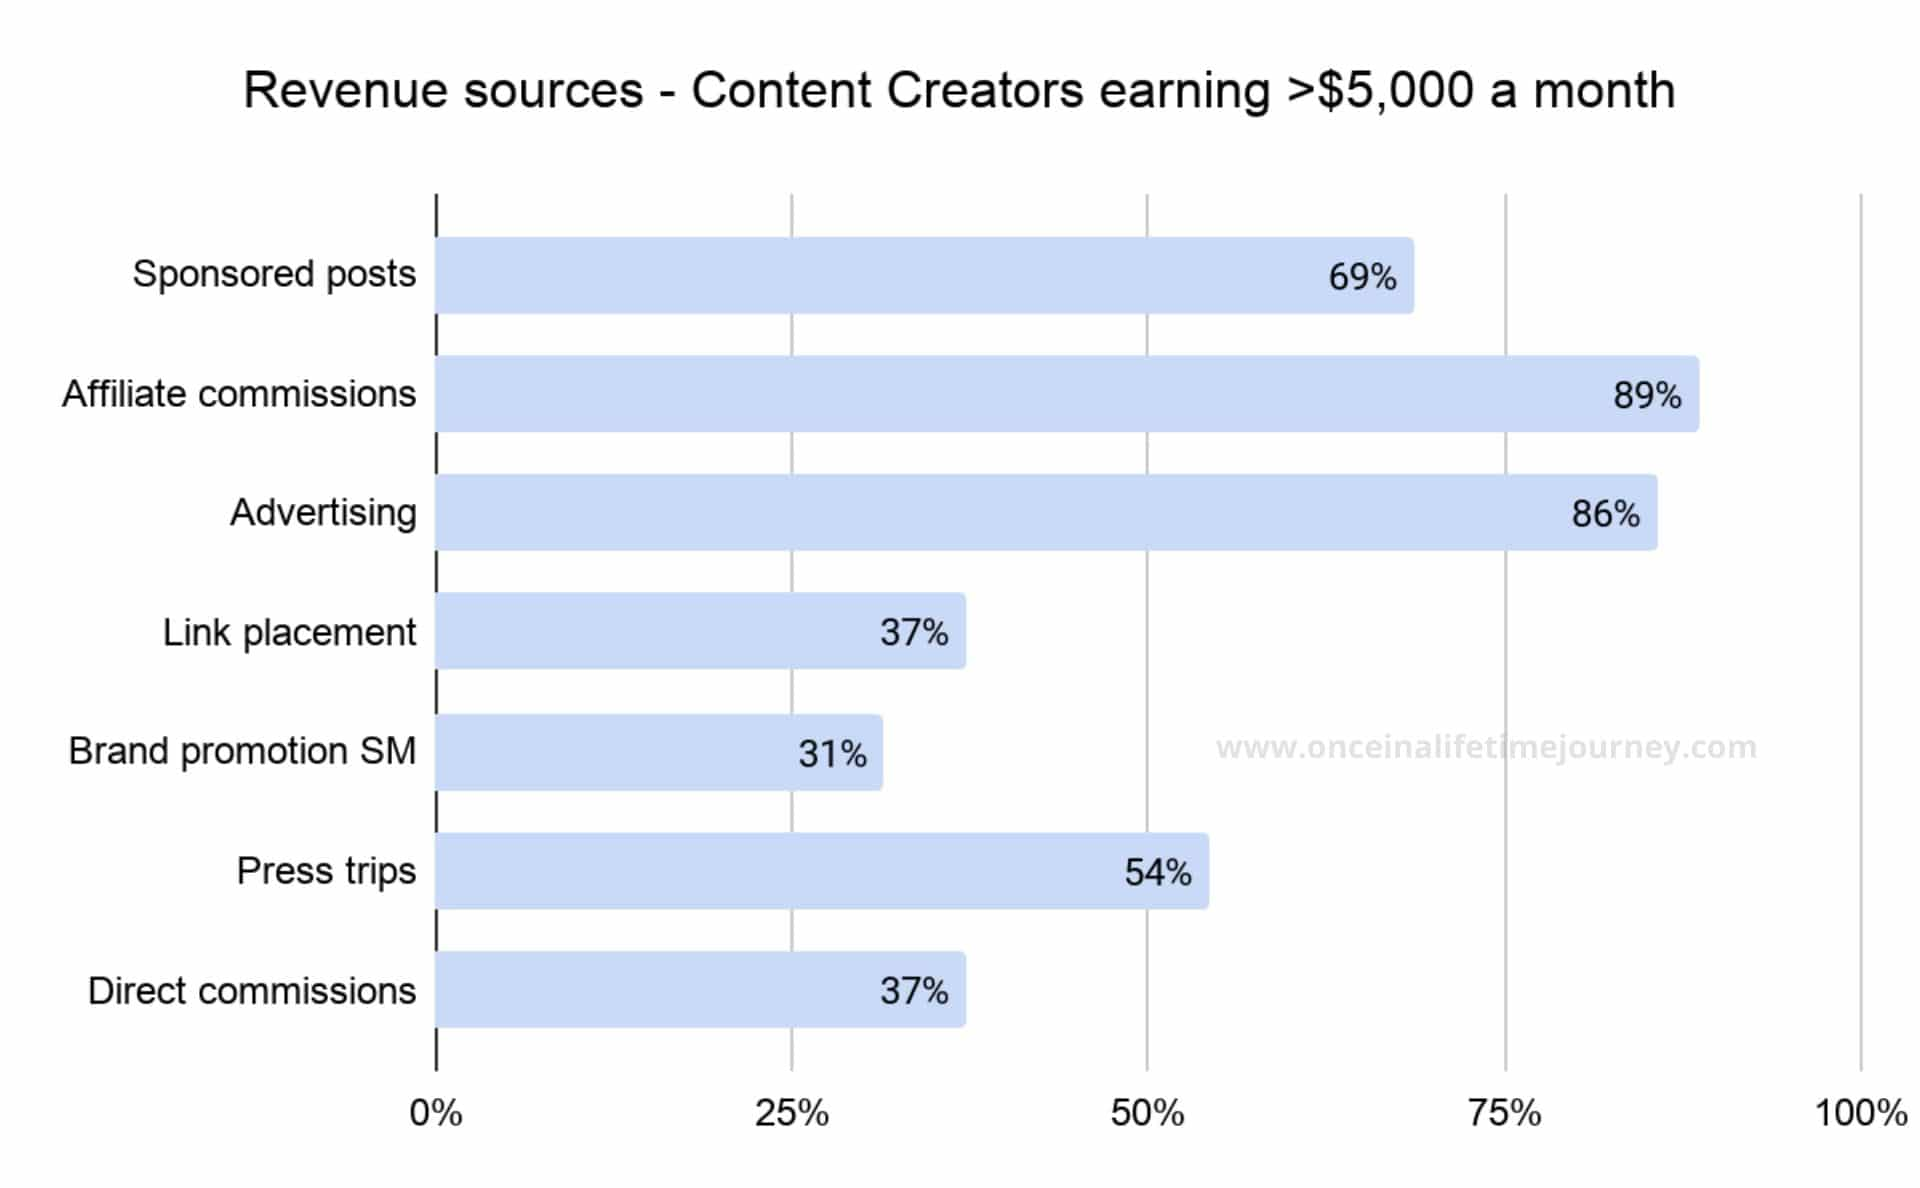 Sources of Revenue for higher earners